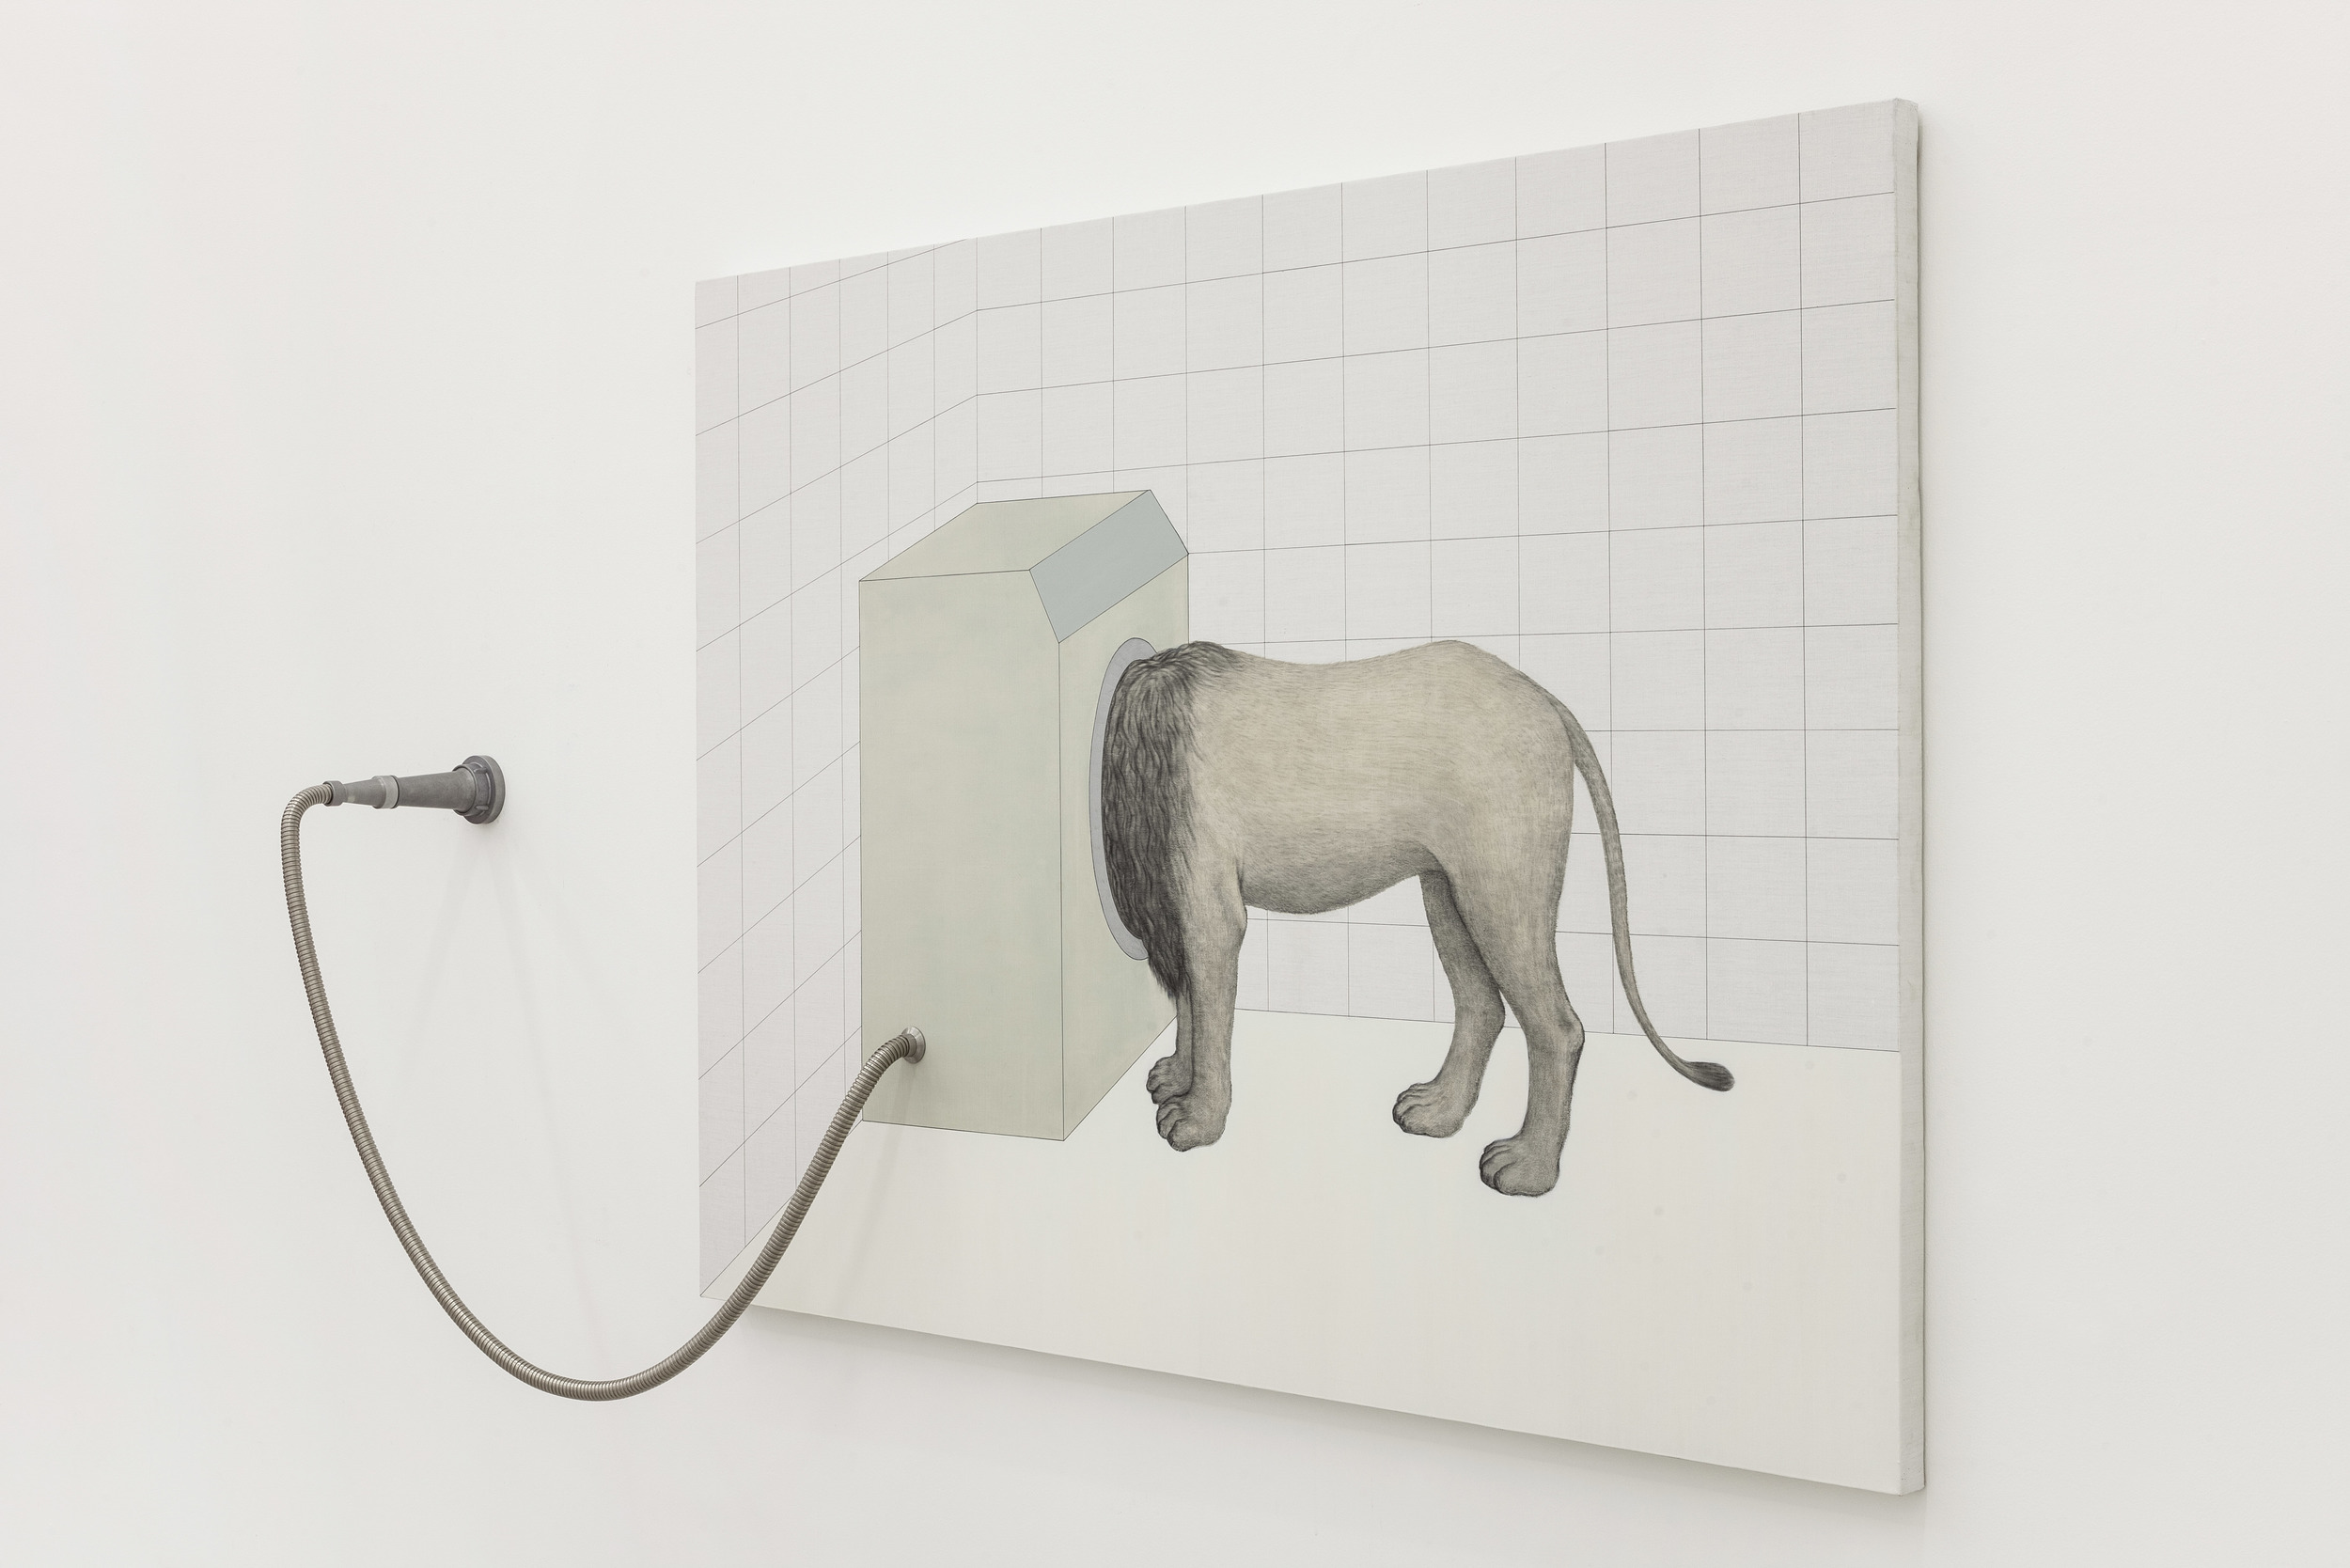 Gao Lei 高磊, H5126, 2014, Oil and acrylic on canvas, metal tube and high-pressure water hose 布面油画丙烯、金属软管、高压水枪, 150 x 200 cm